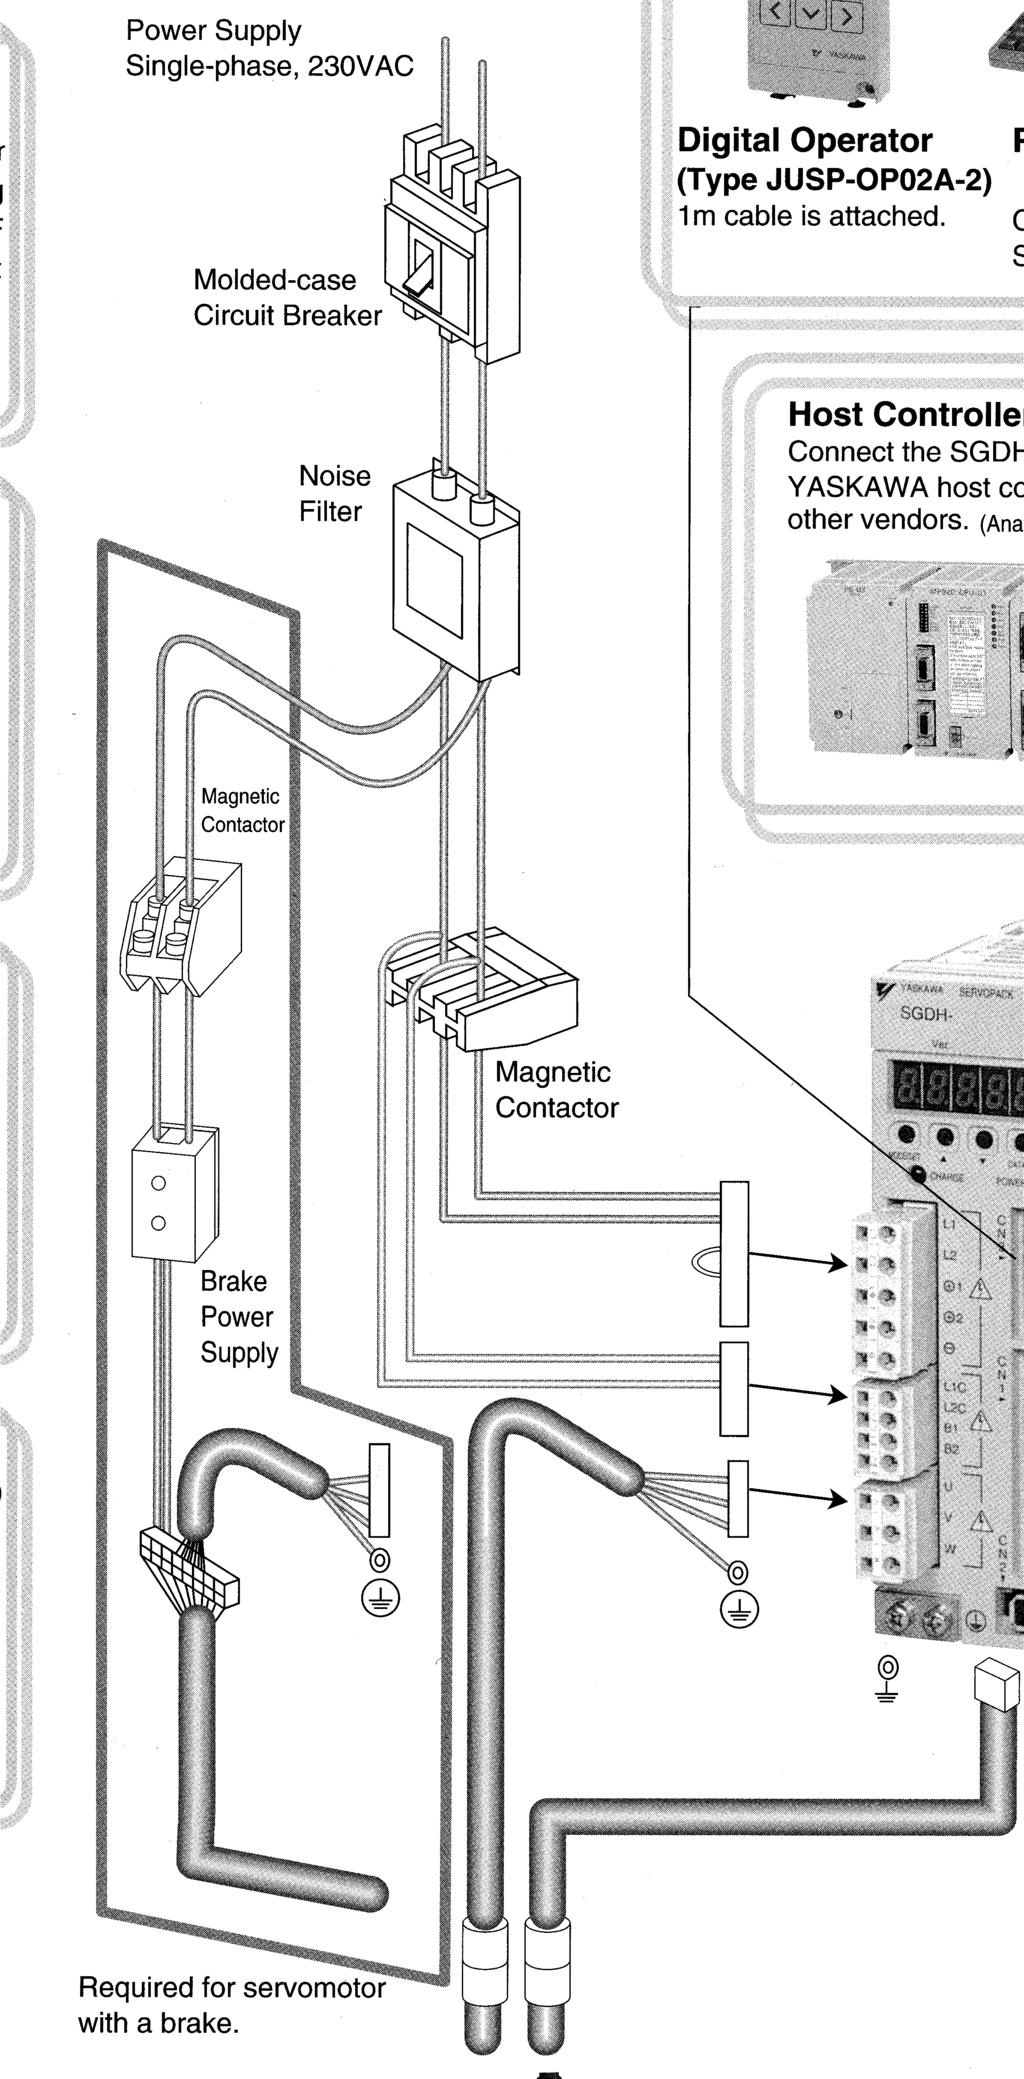 Servo System Products Pdf Wiring Permanent Magnet Latching Contactors For Nonmotor And Lighting Product Overview Single Phase 30w To 1500w 230v Ac Molded Case Circuit